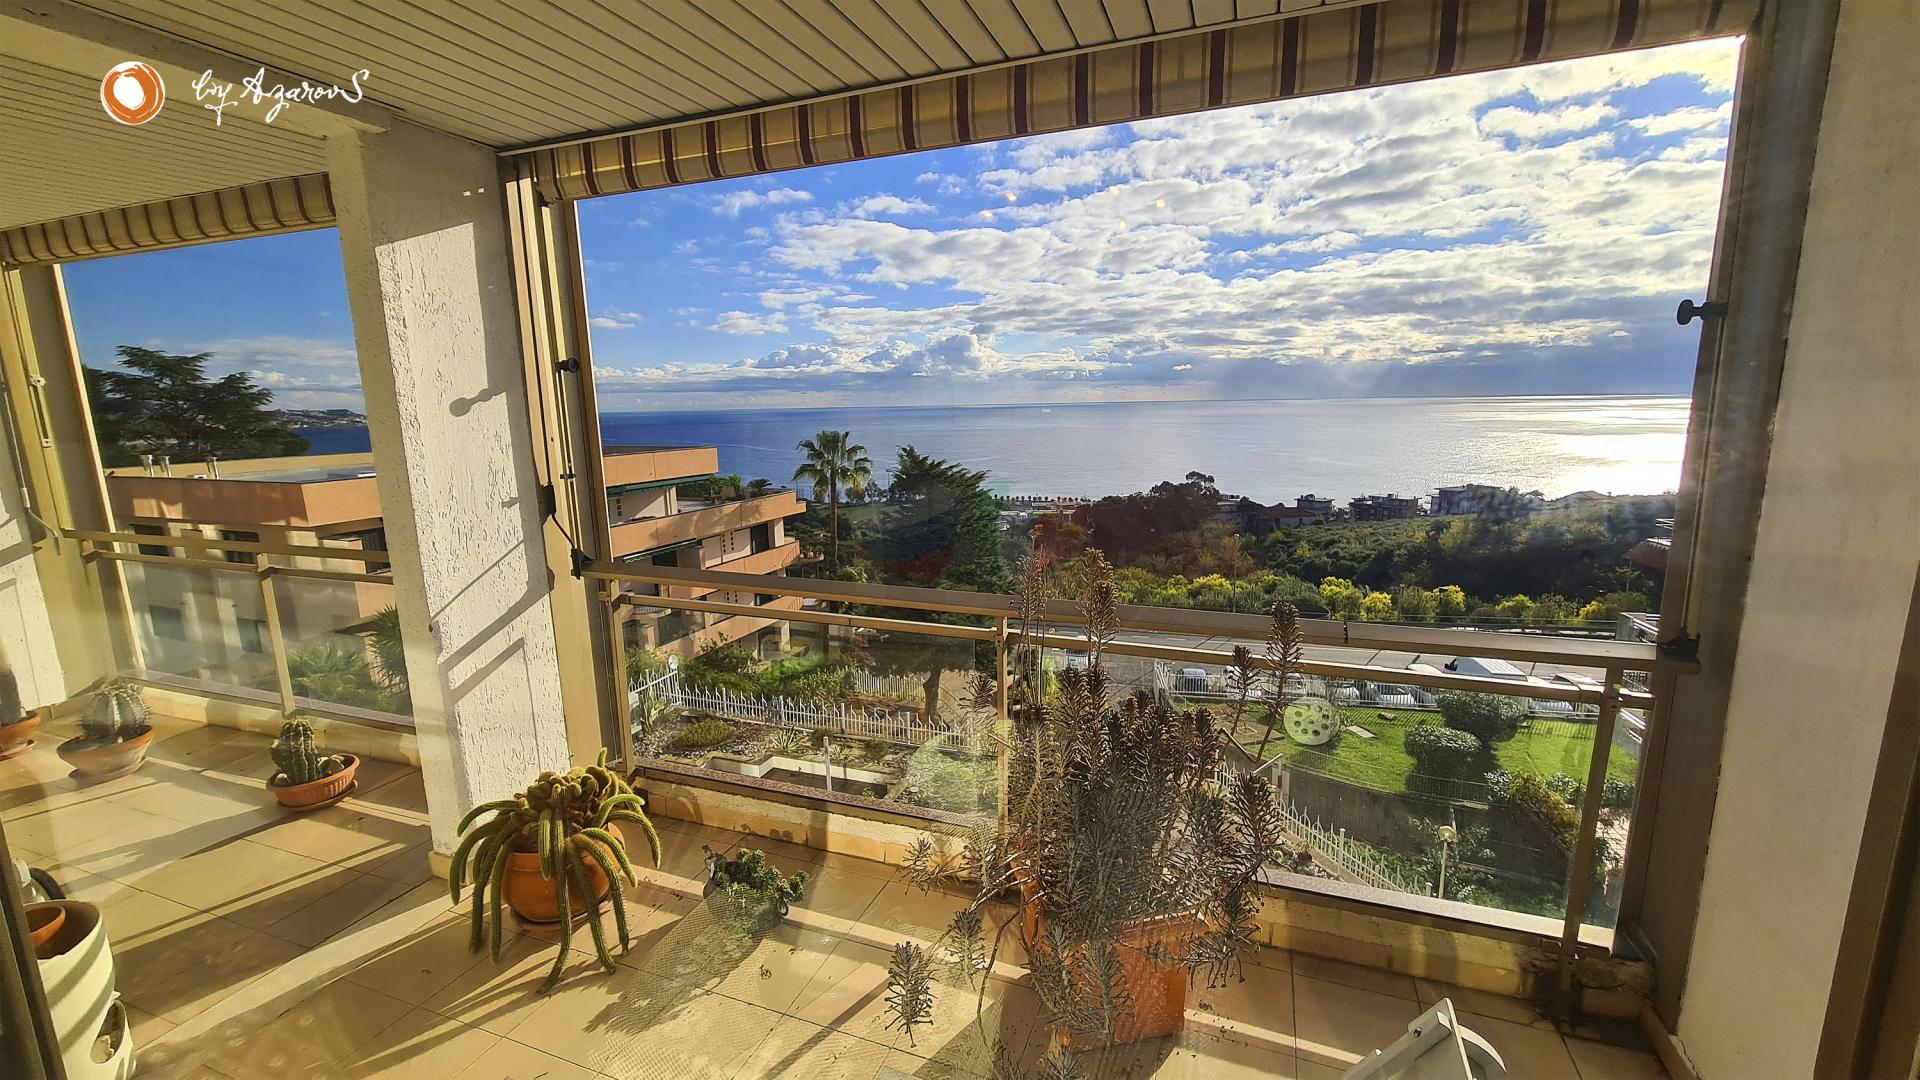 Apartment 90 m2 with terrace in Sanremo